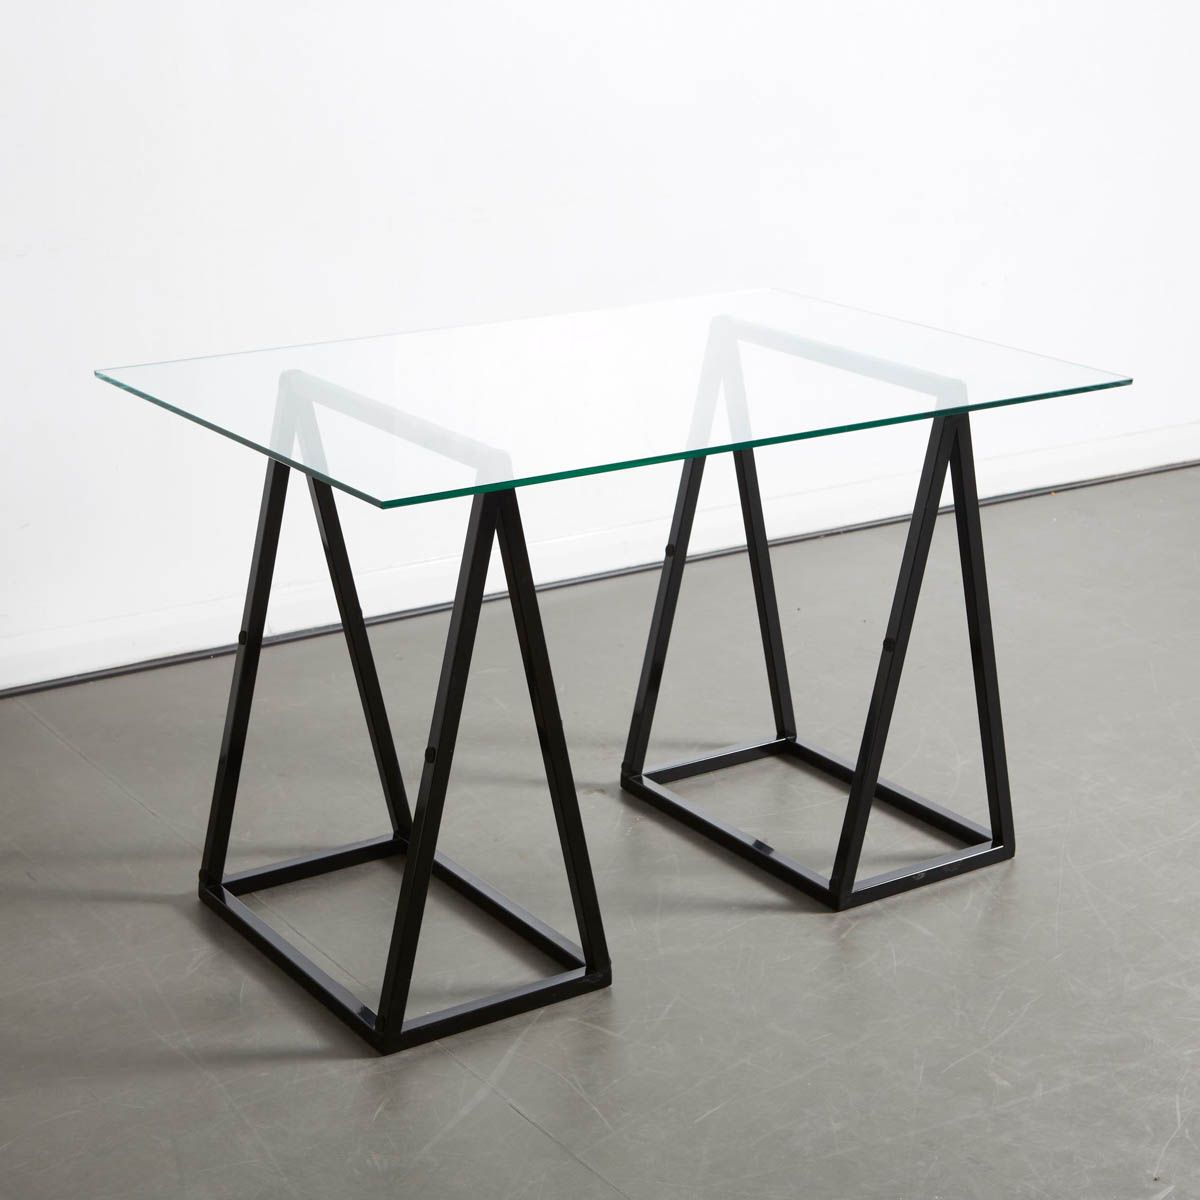 A Frame Table Is Perfect For Small Space Living Mobilier